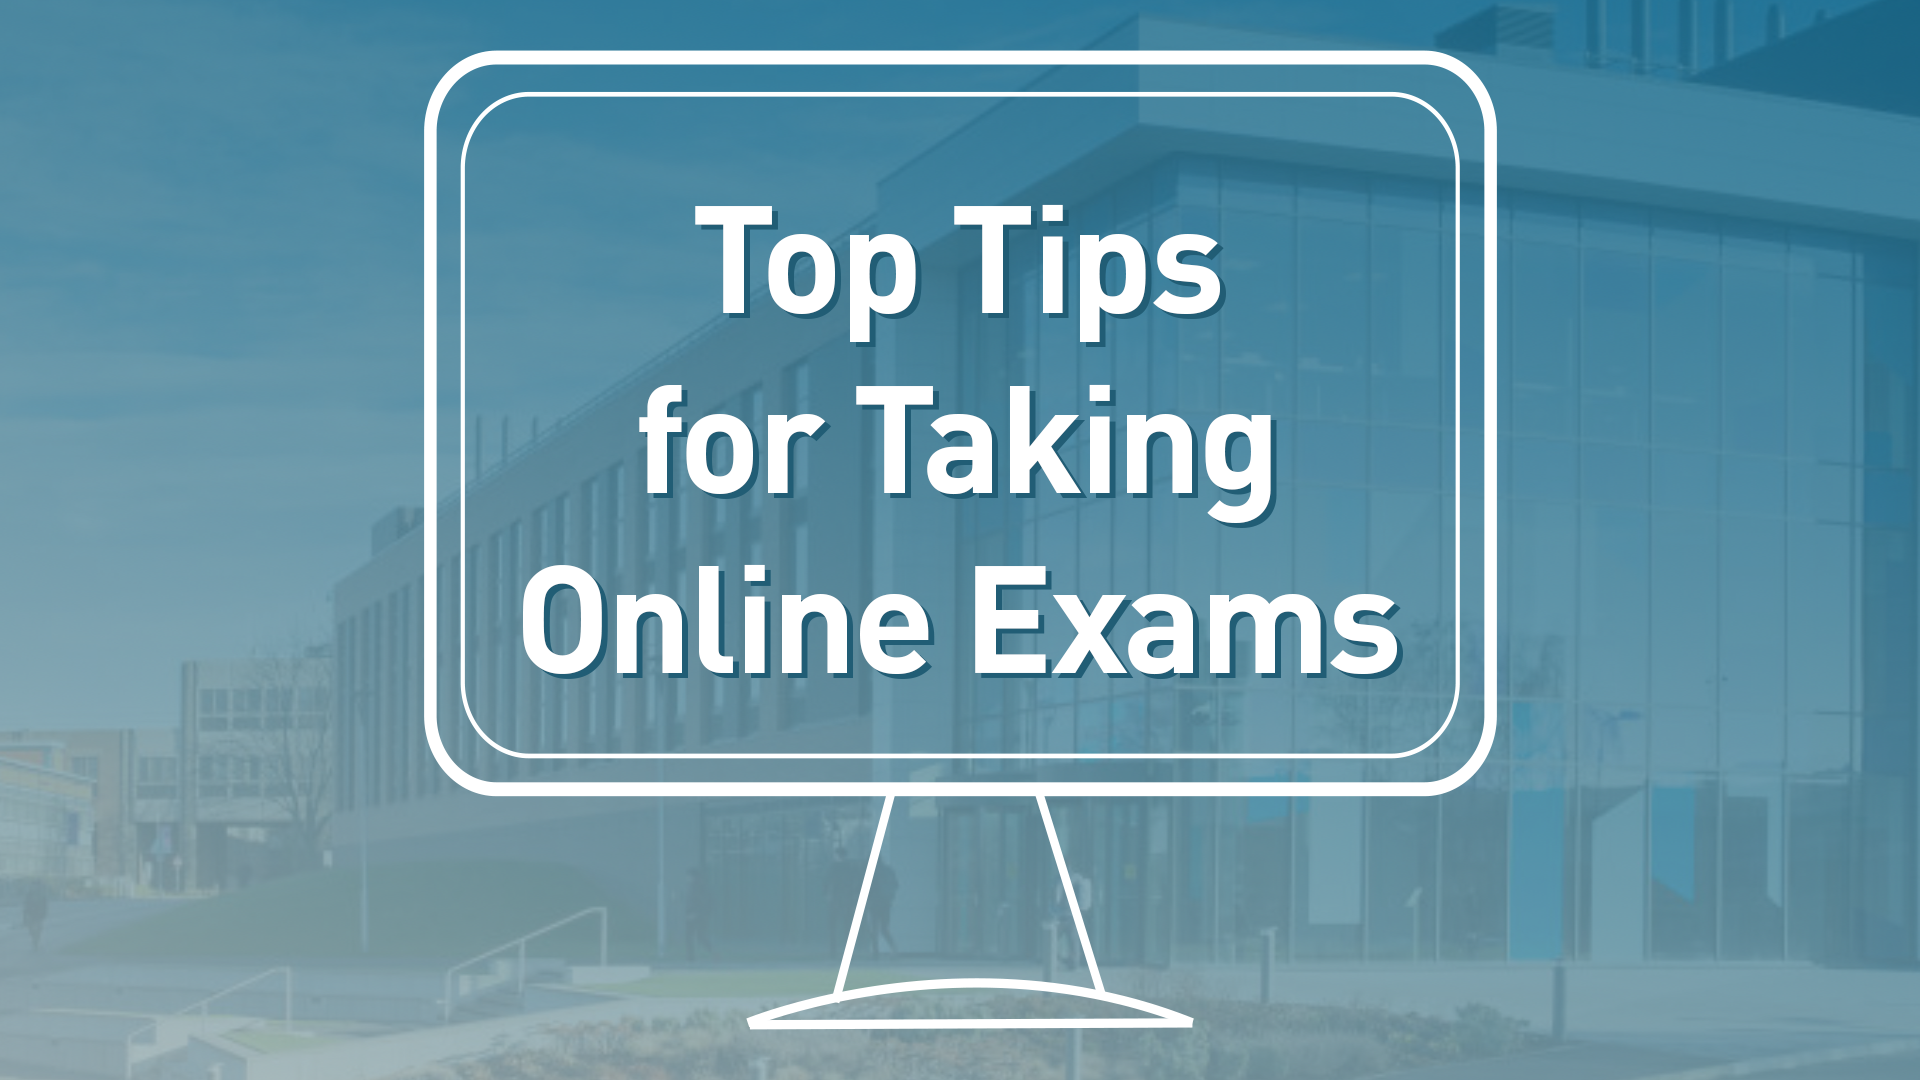 Top Tips for Taking Online Exams